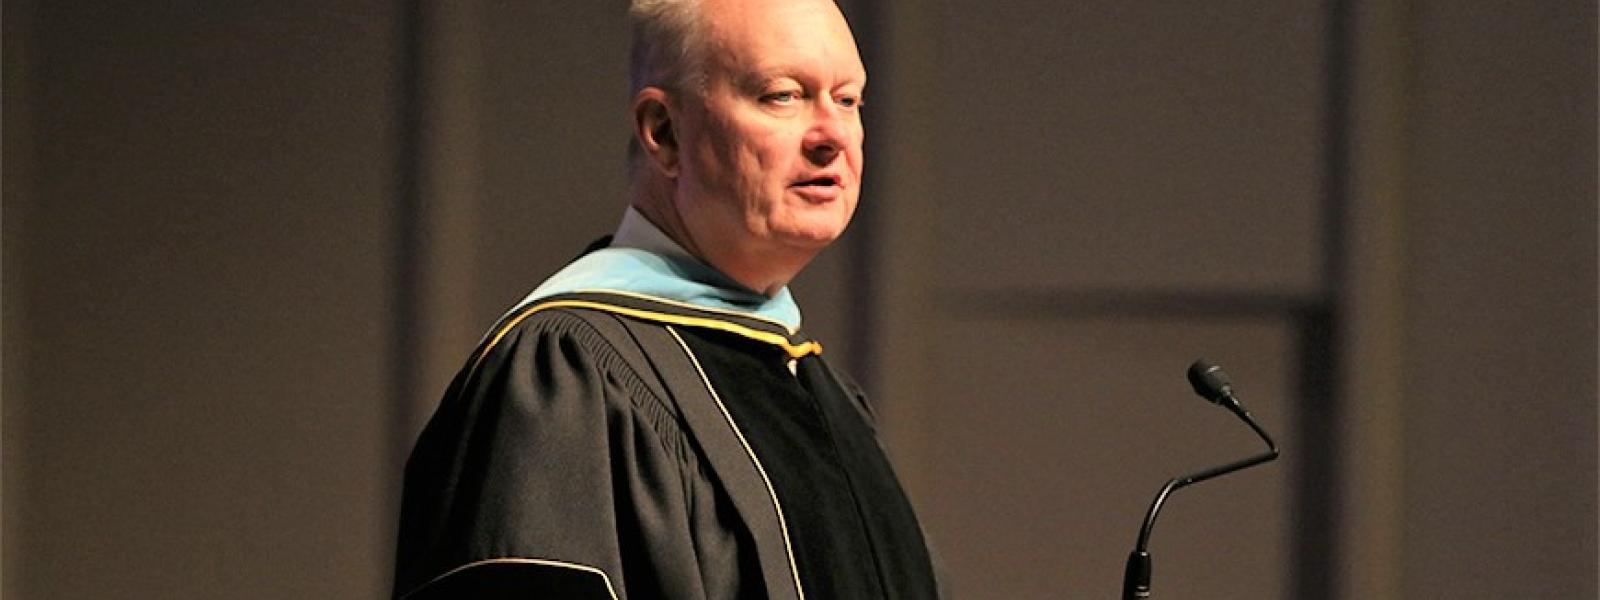 Dr. Ralph Enlow was the keynote speaker at the inauguration of CIU President Dr. Mark Smith.